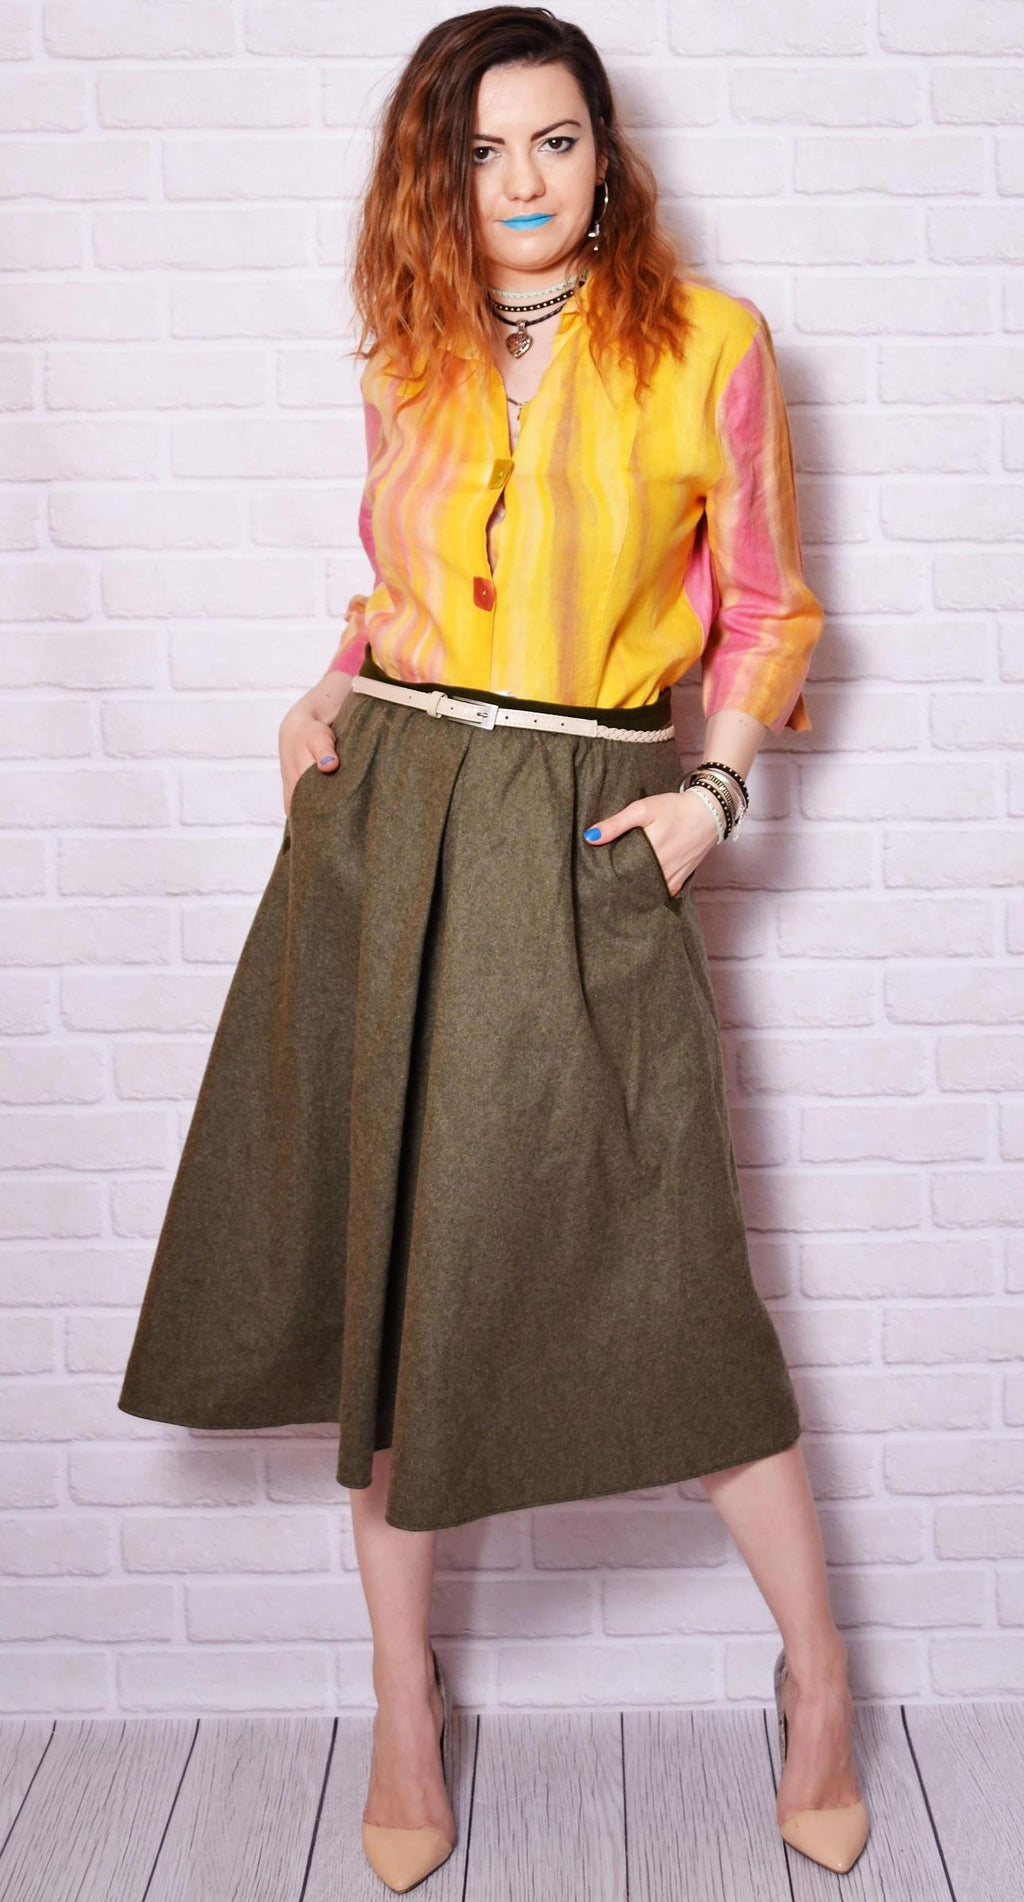 Skirts - Vintage Clothes